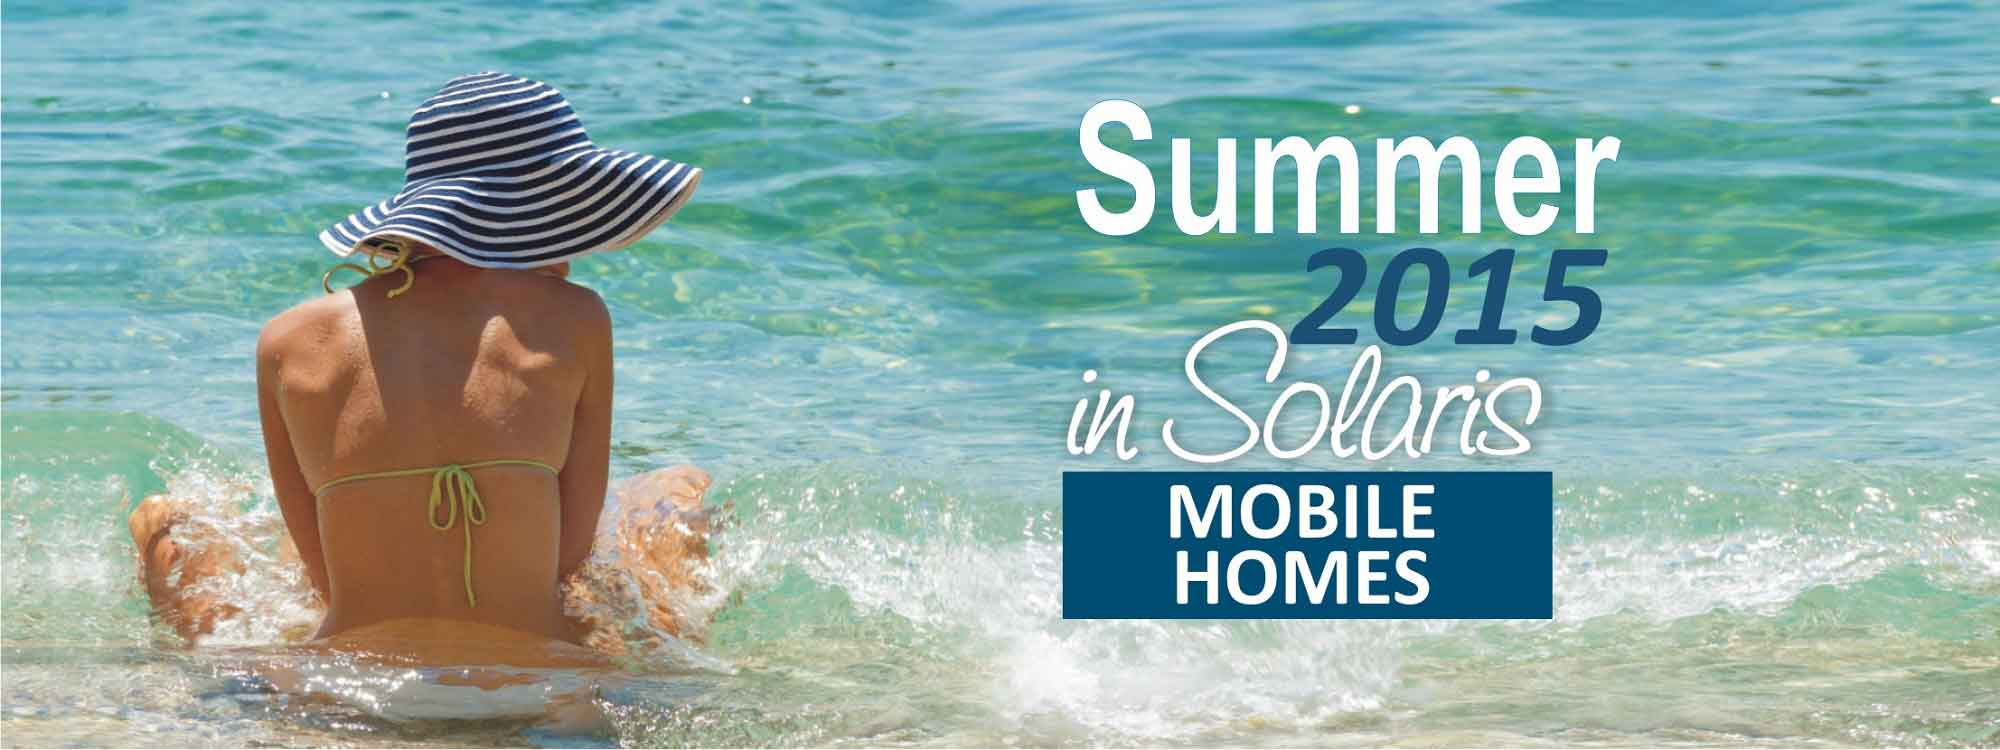 Summer_2015_Solaris_Camping_MObile_Homes1